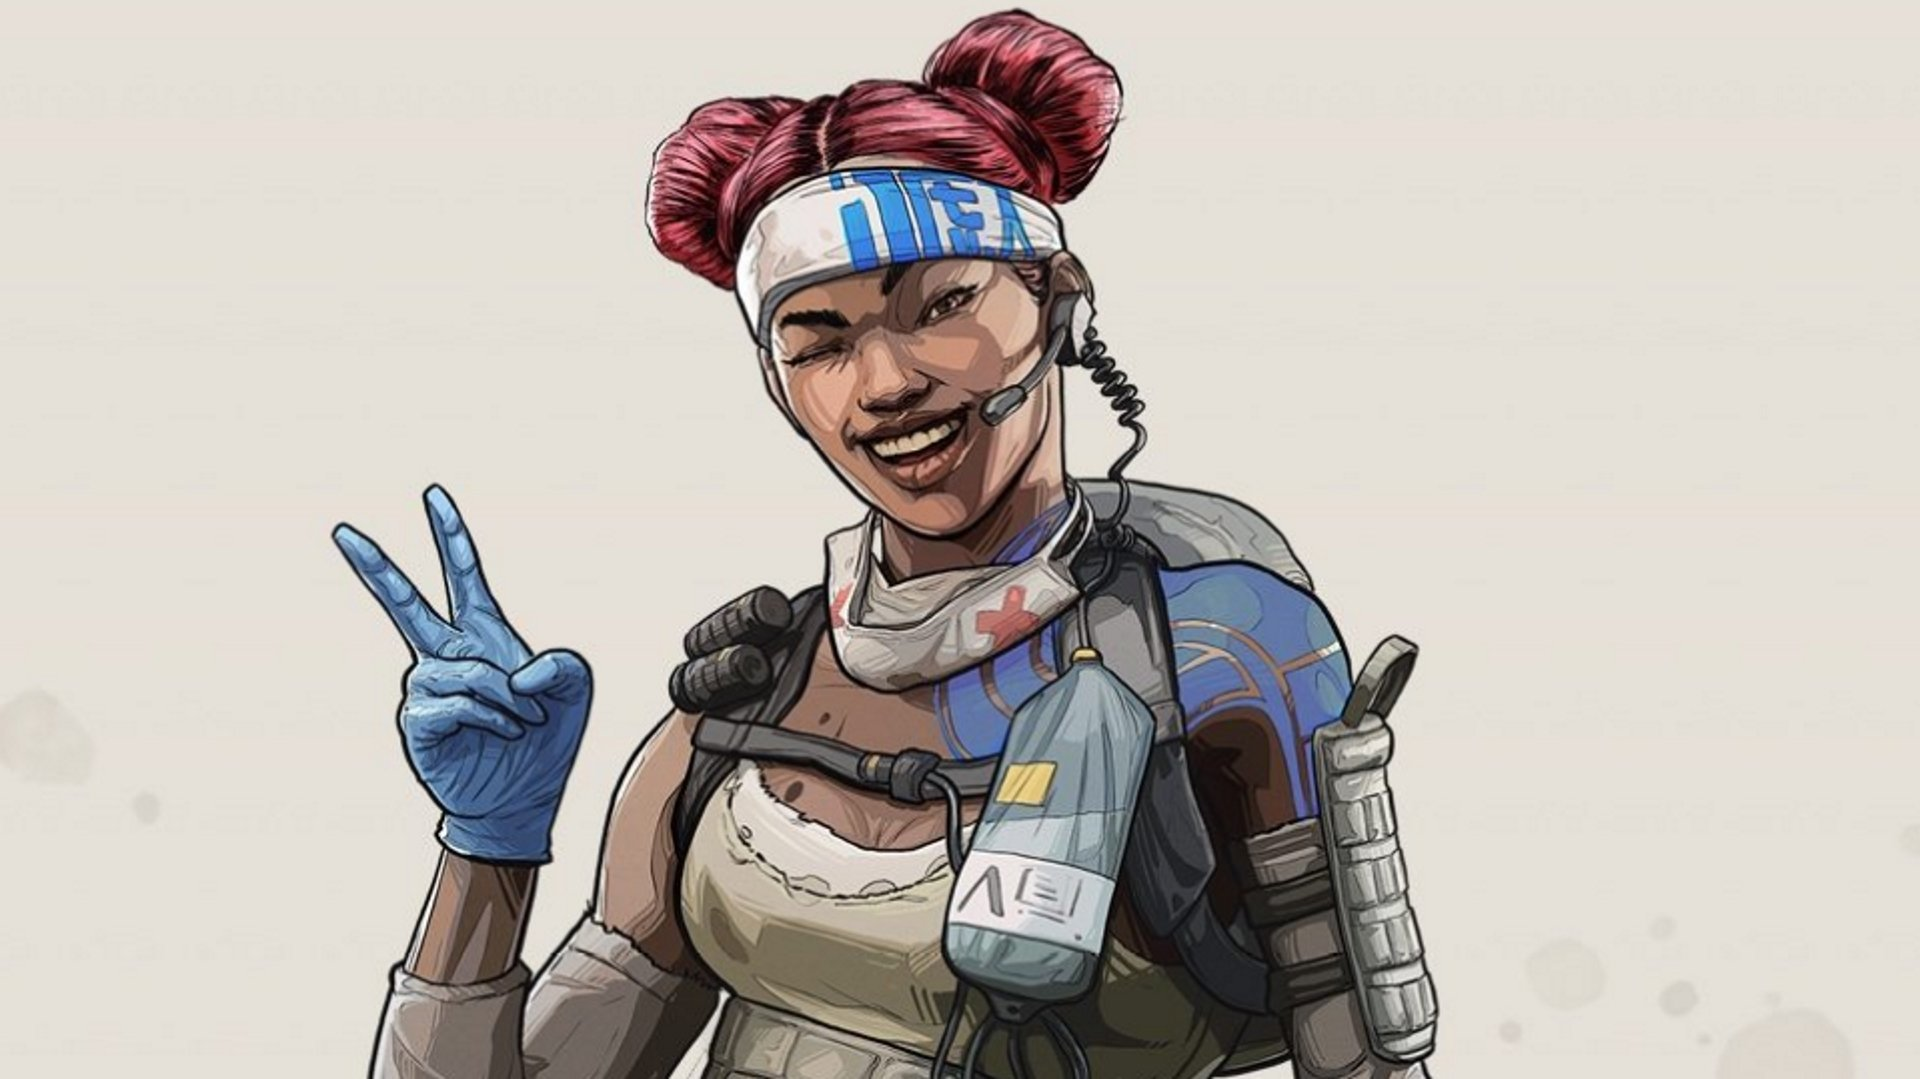 How do Ranked Leagues work in Apex Legends